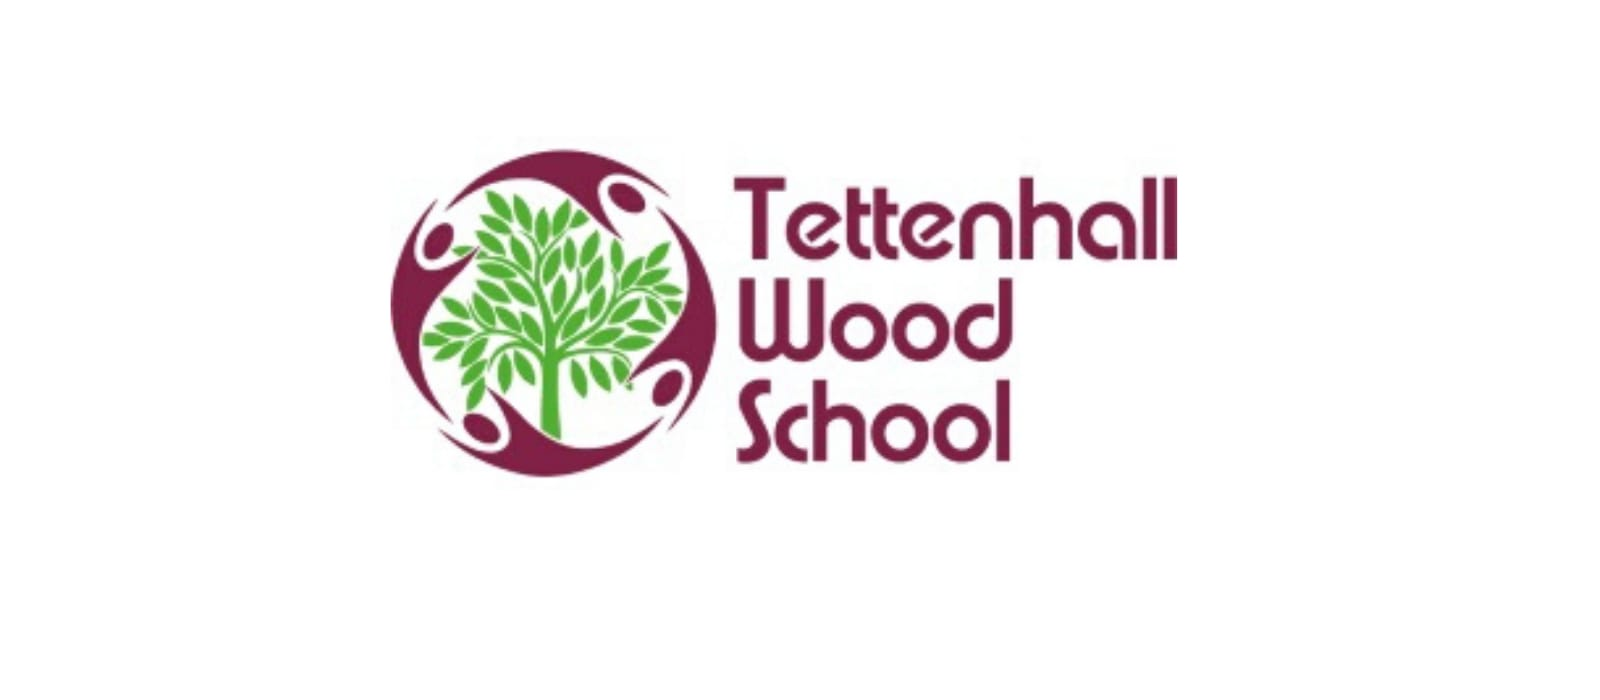 Tettenhall Wood School